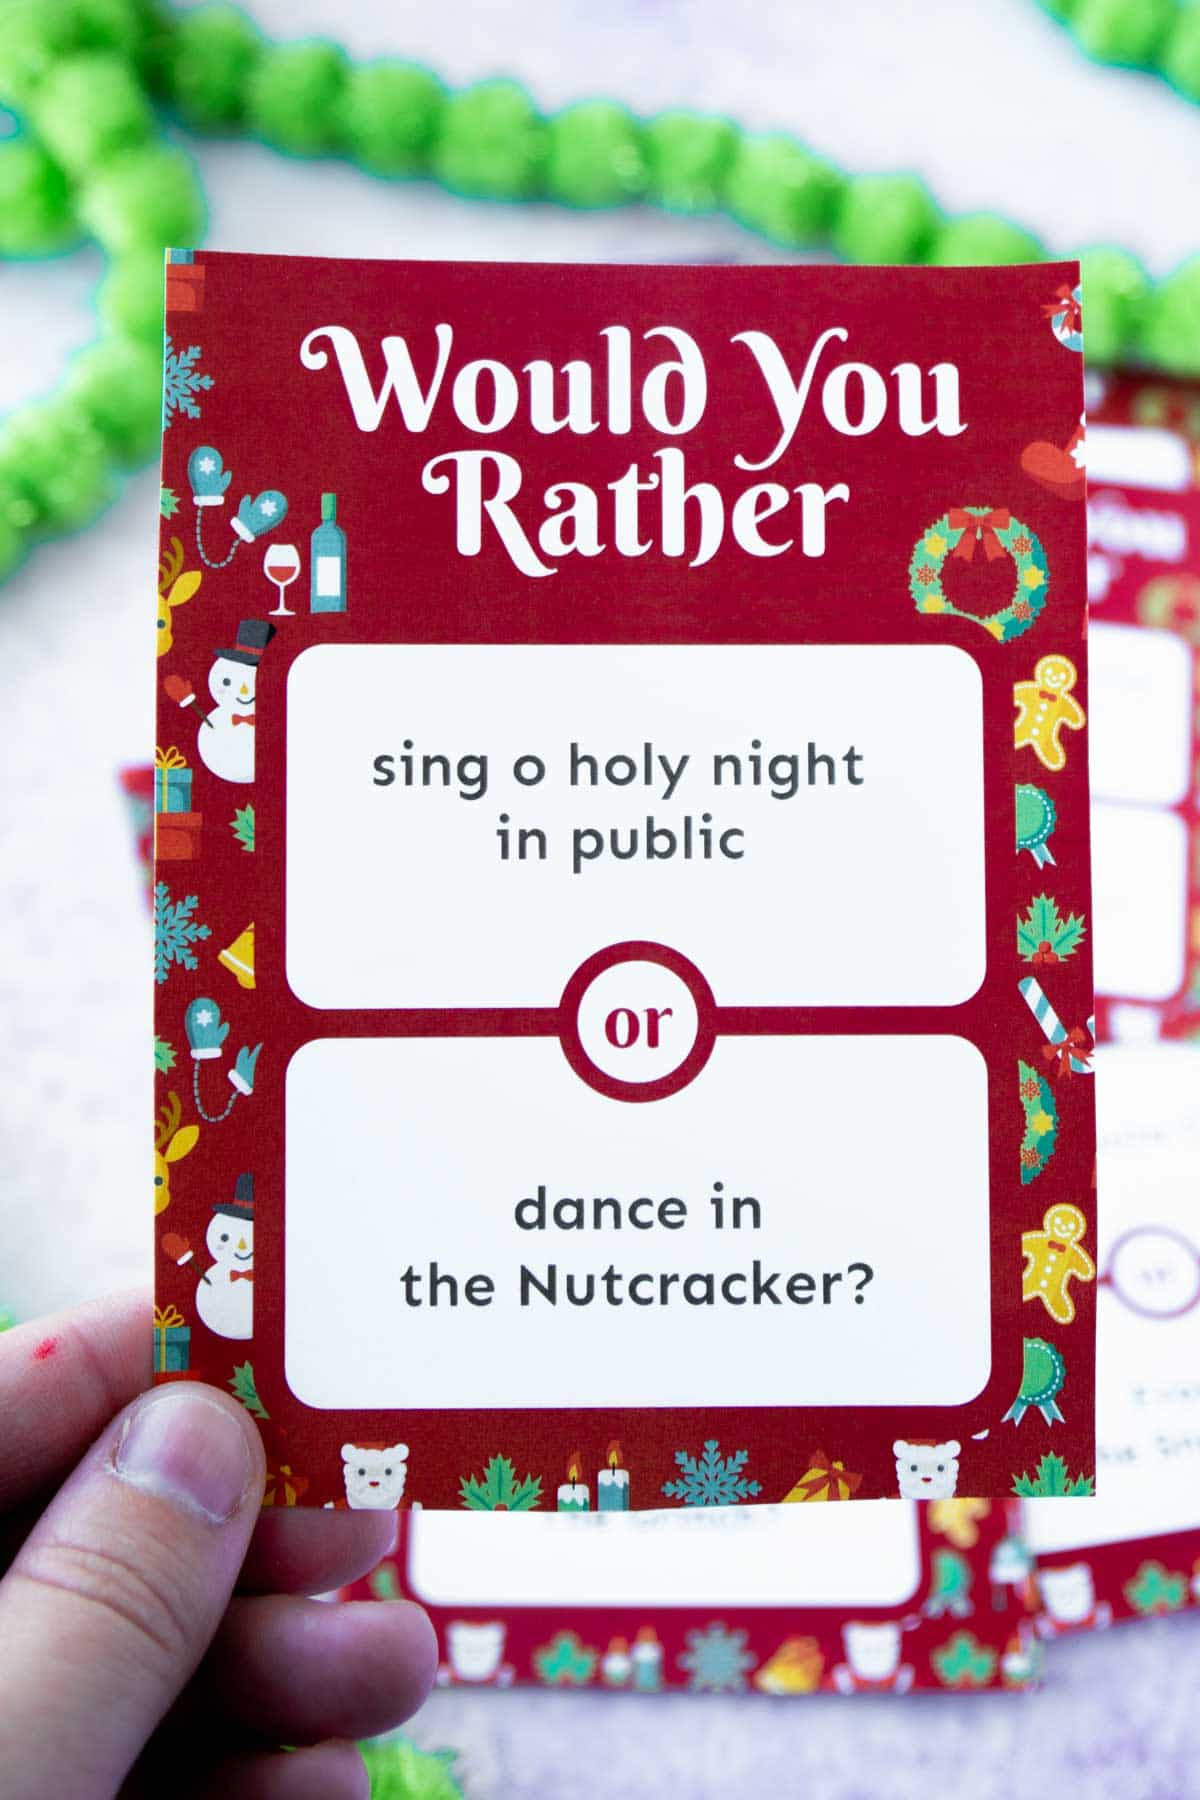 Woman's hand holding up a Christmas would you rather question card